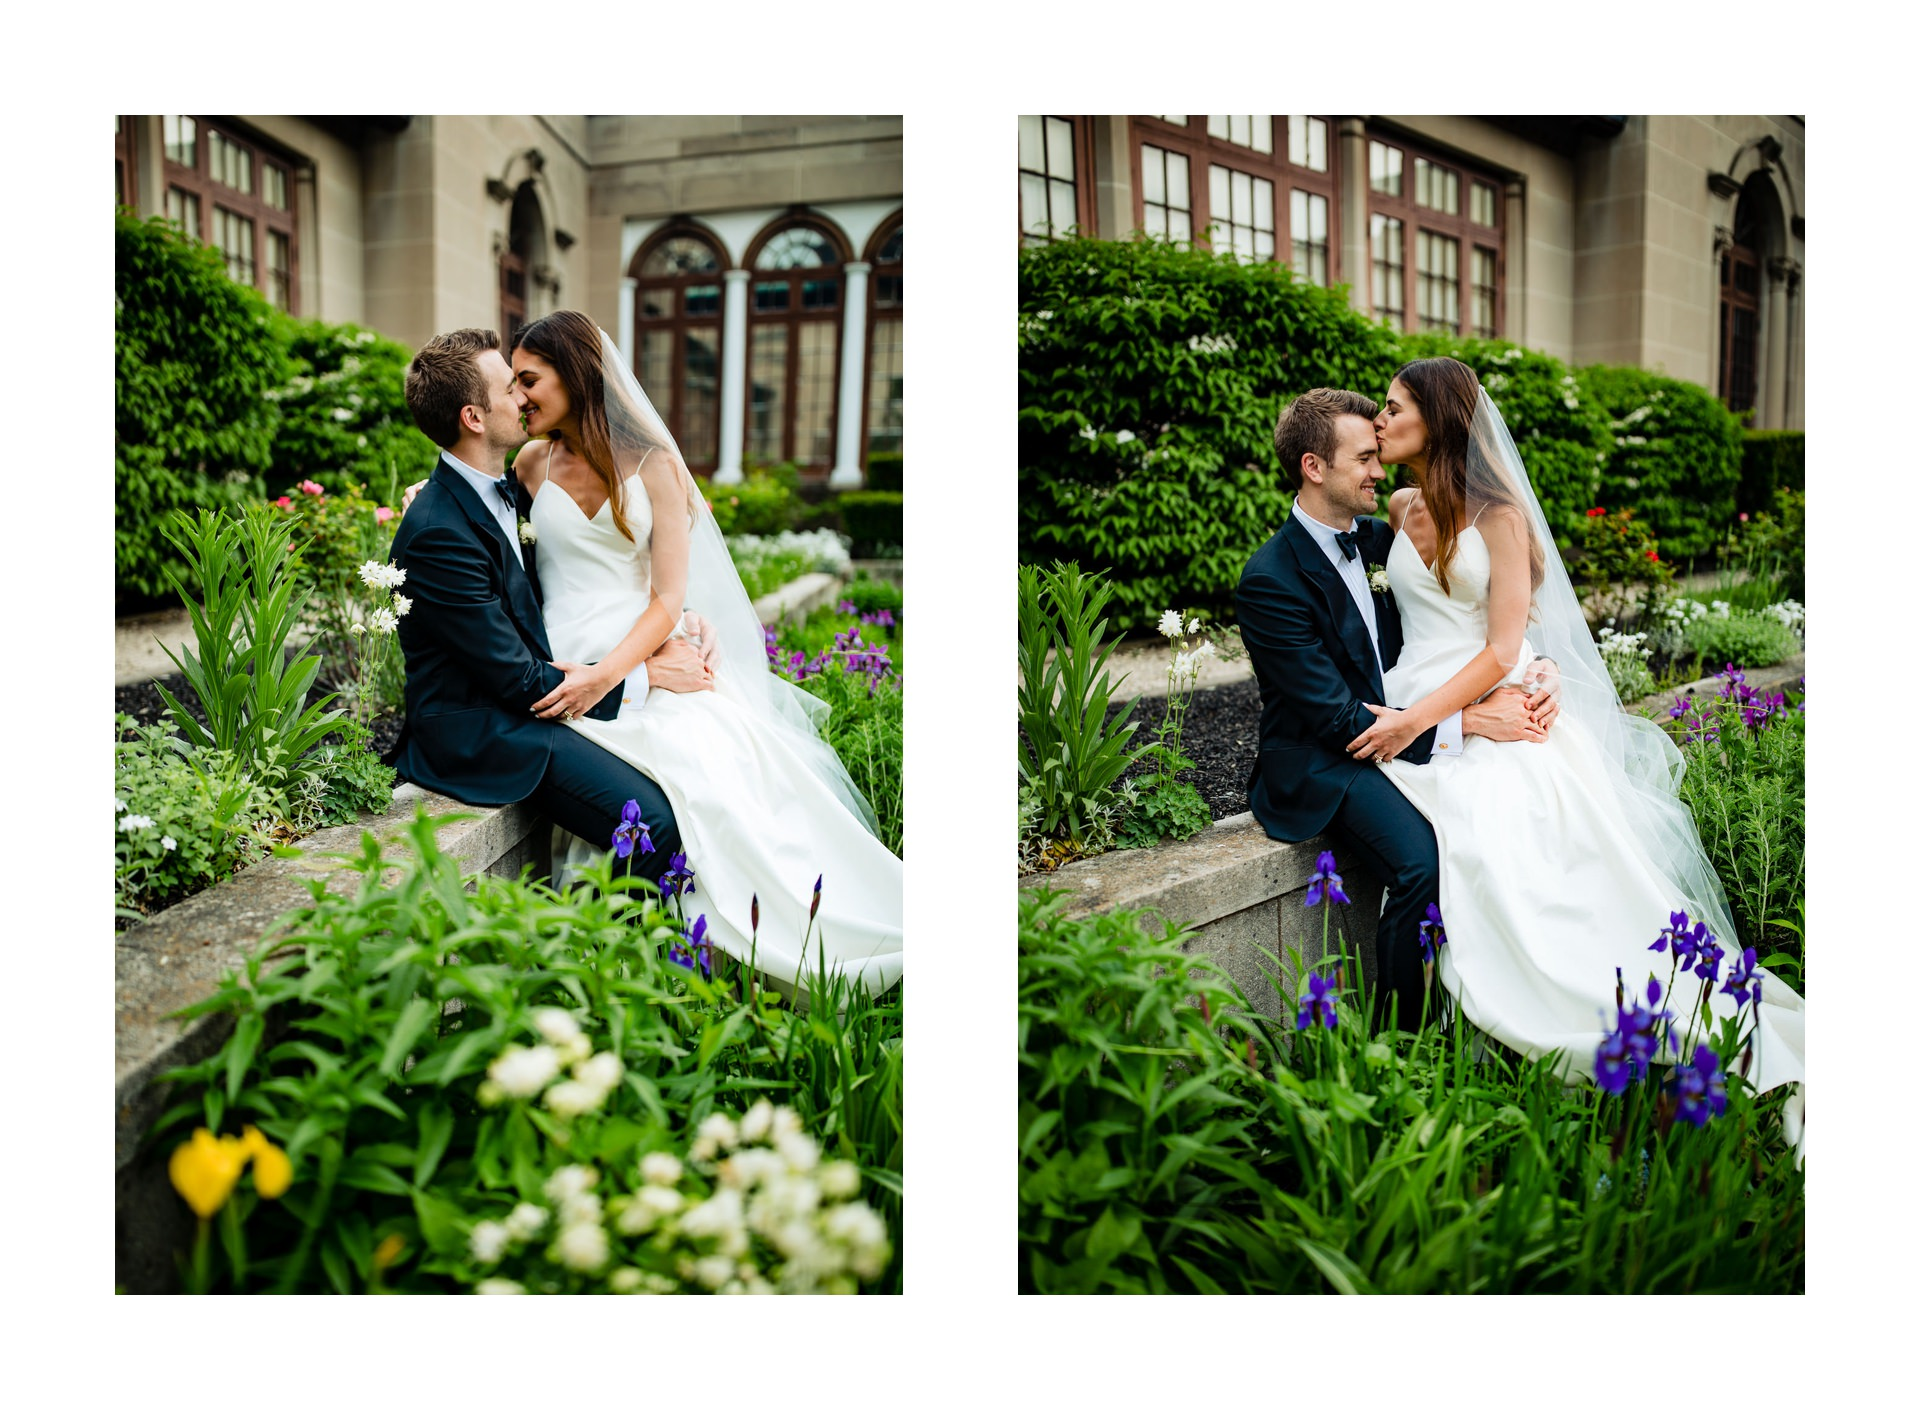 Cleveland Histroy Center Wedding Photographer at WRHS 47.jpg